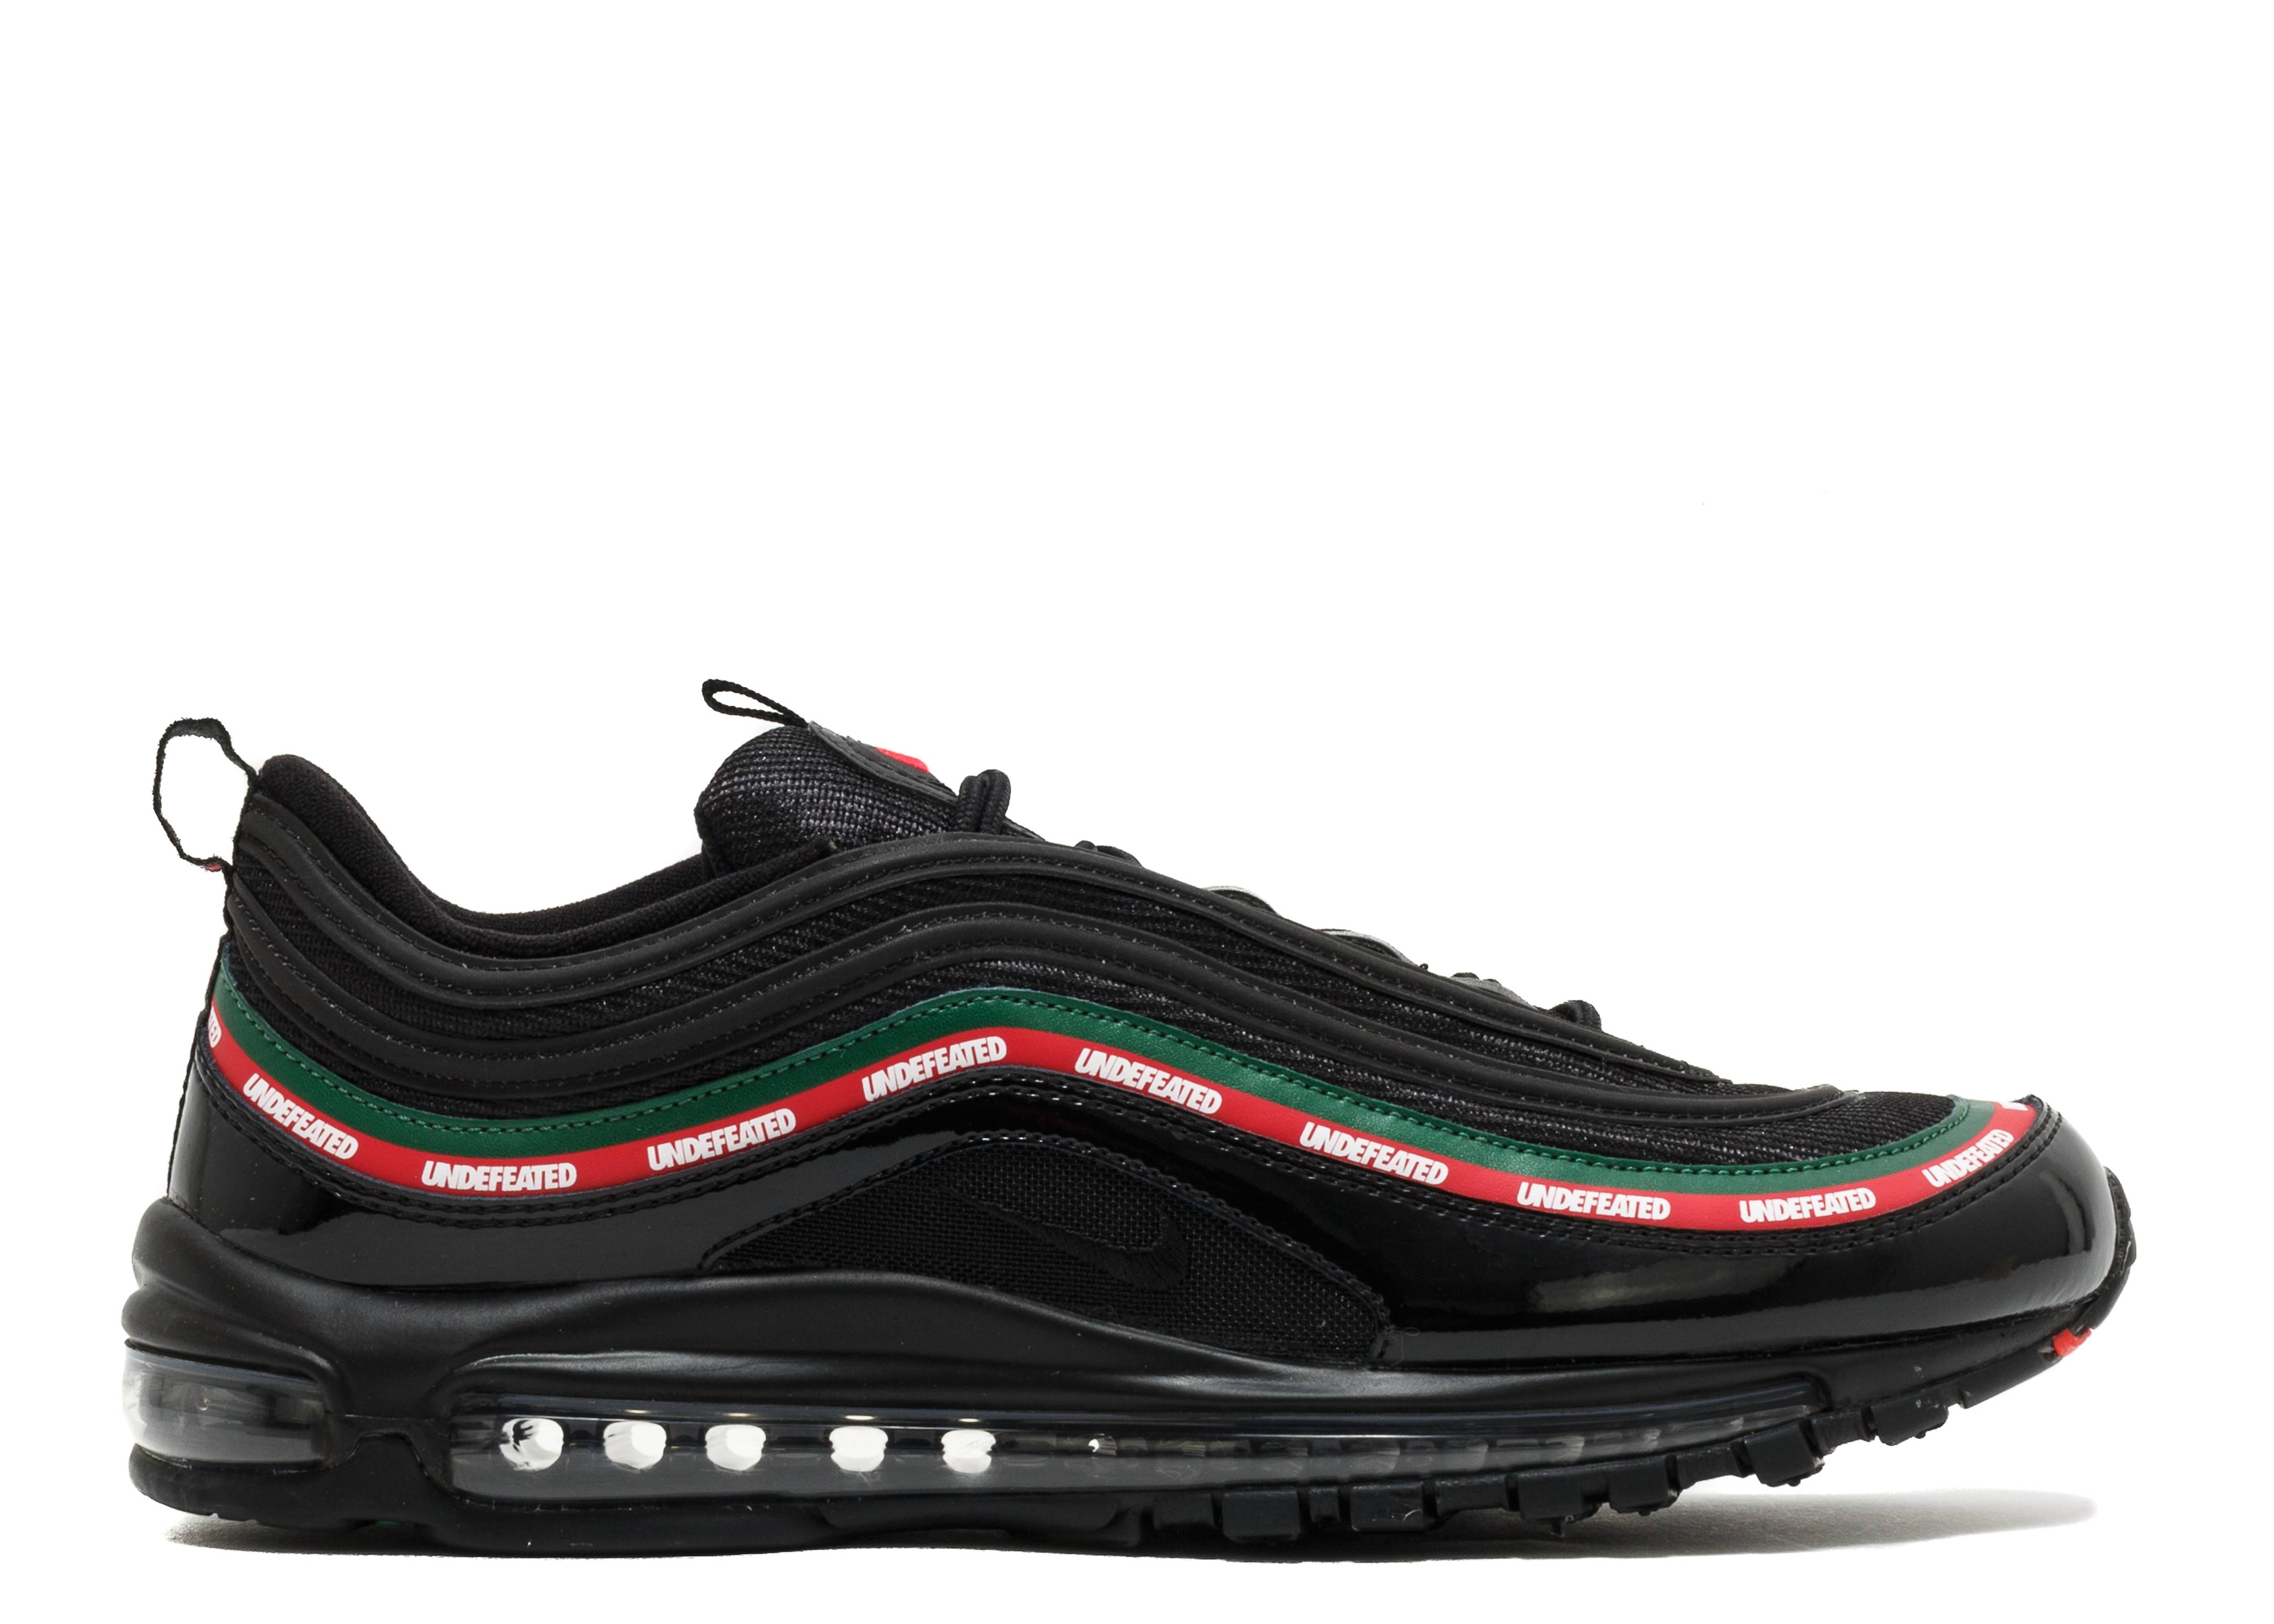 factory price cbe97 4dbdf nike air max 97 og/undftd